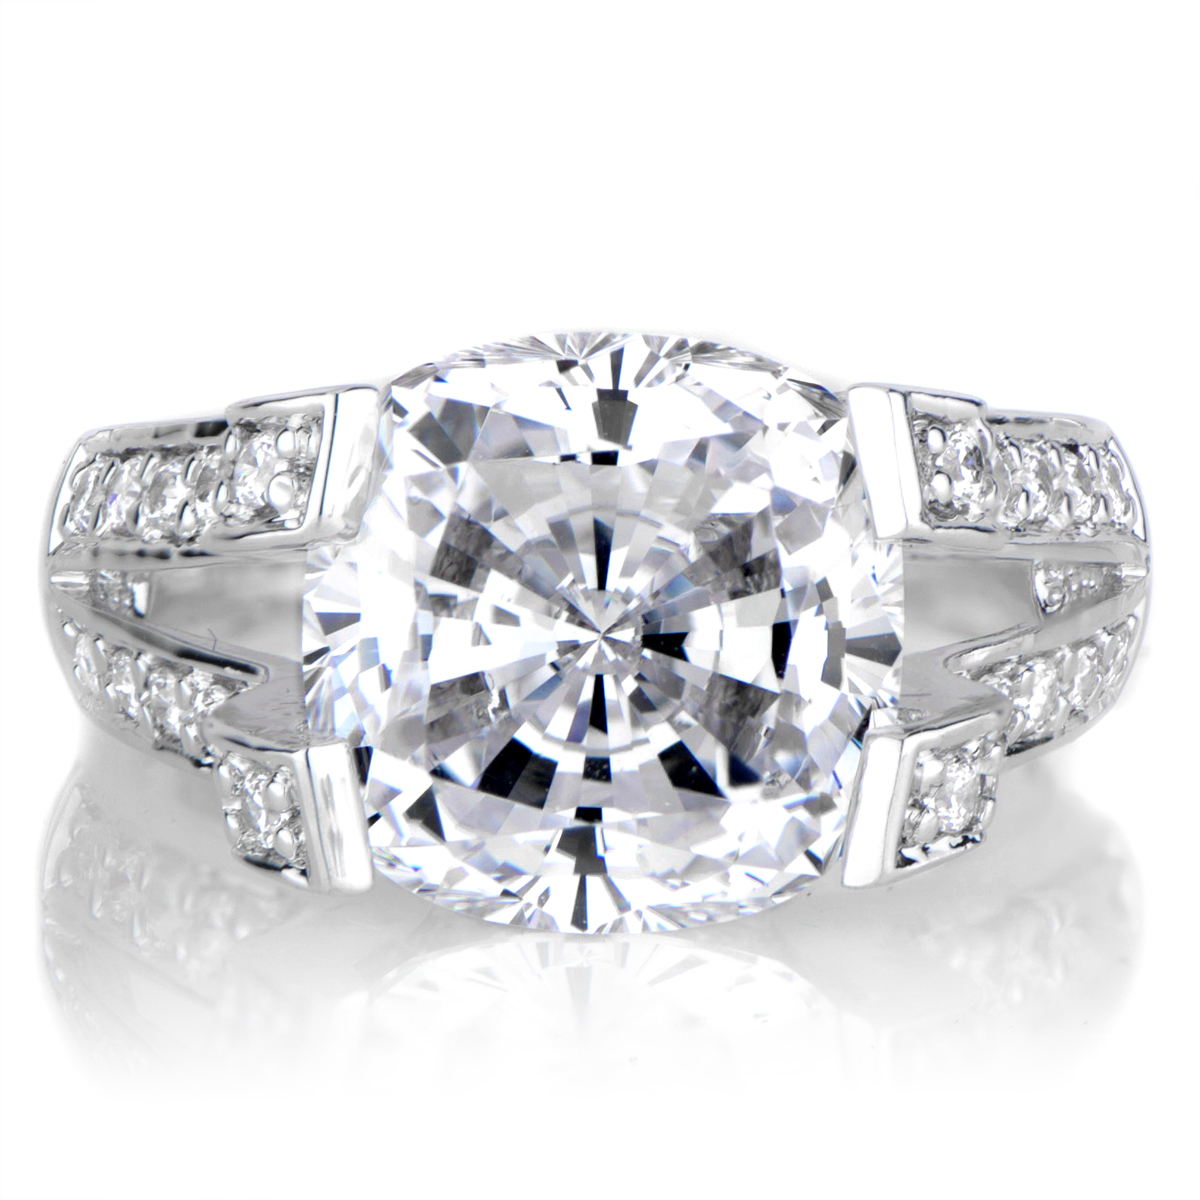 Elizabeths Round Cut CZ Engagement Ring